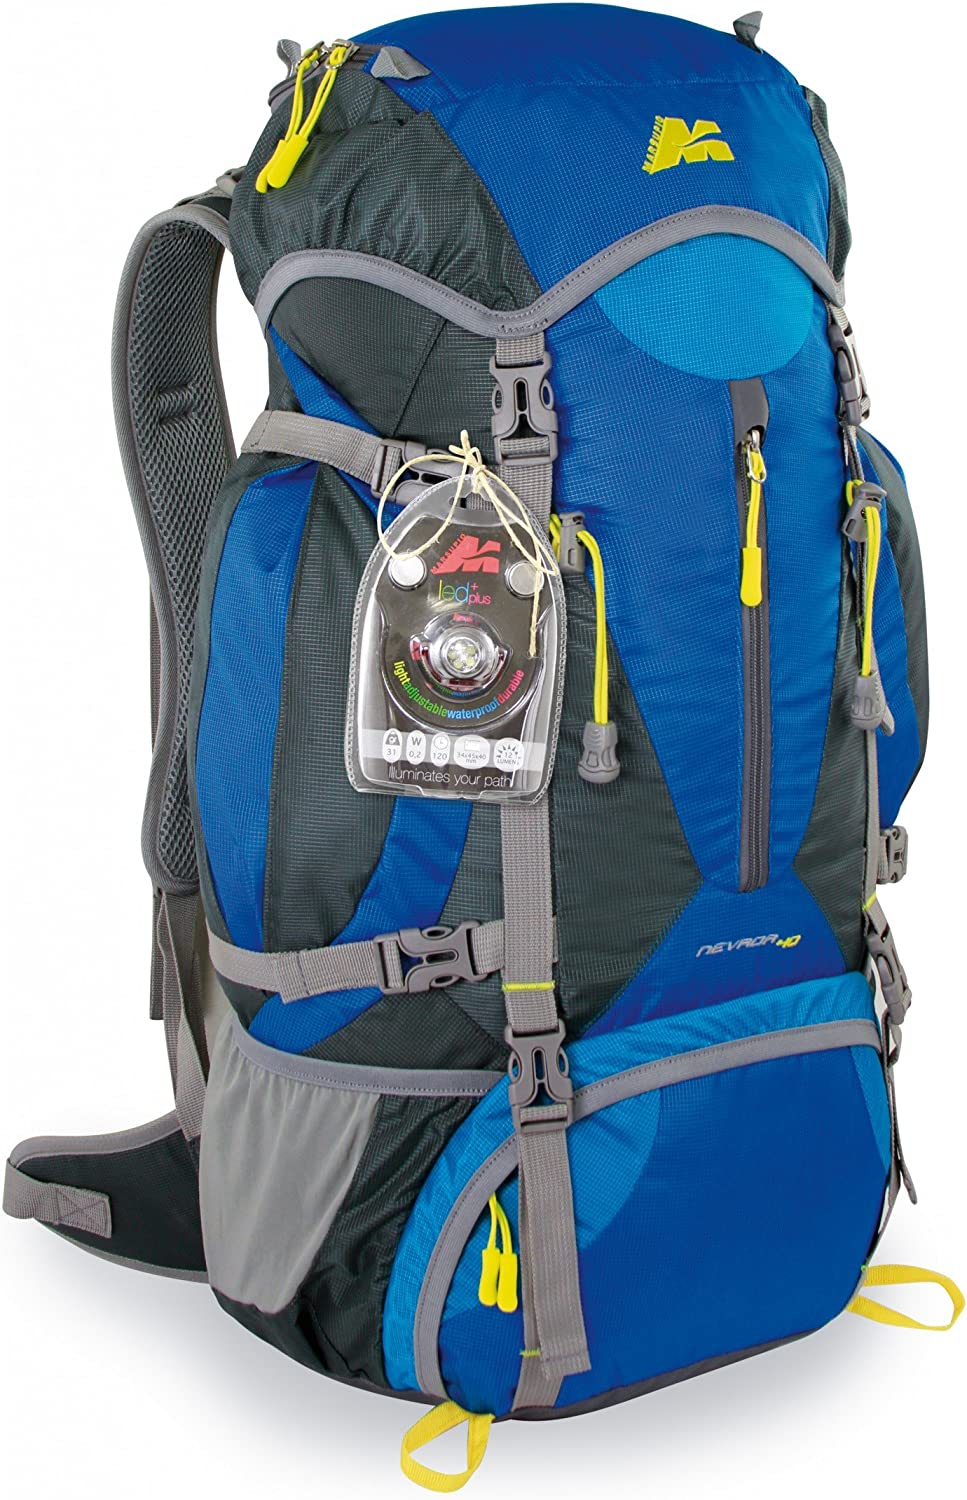 trekking O Lampe frontale LED sportive extra lumineuse pour randonn/ée camping